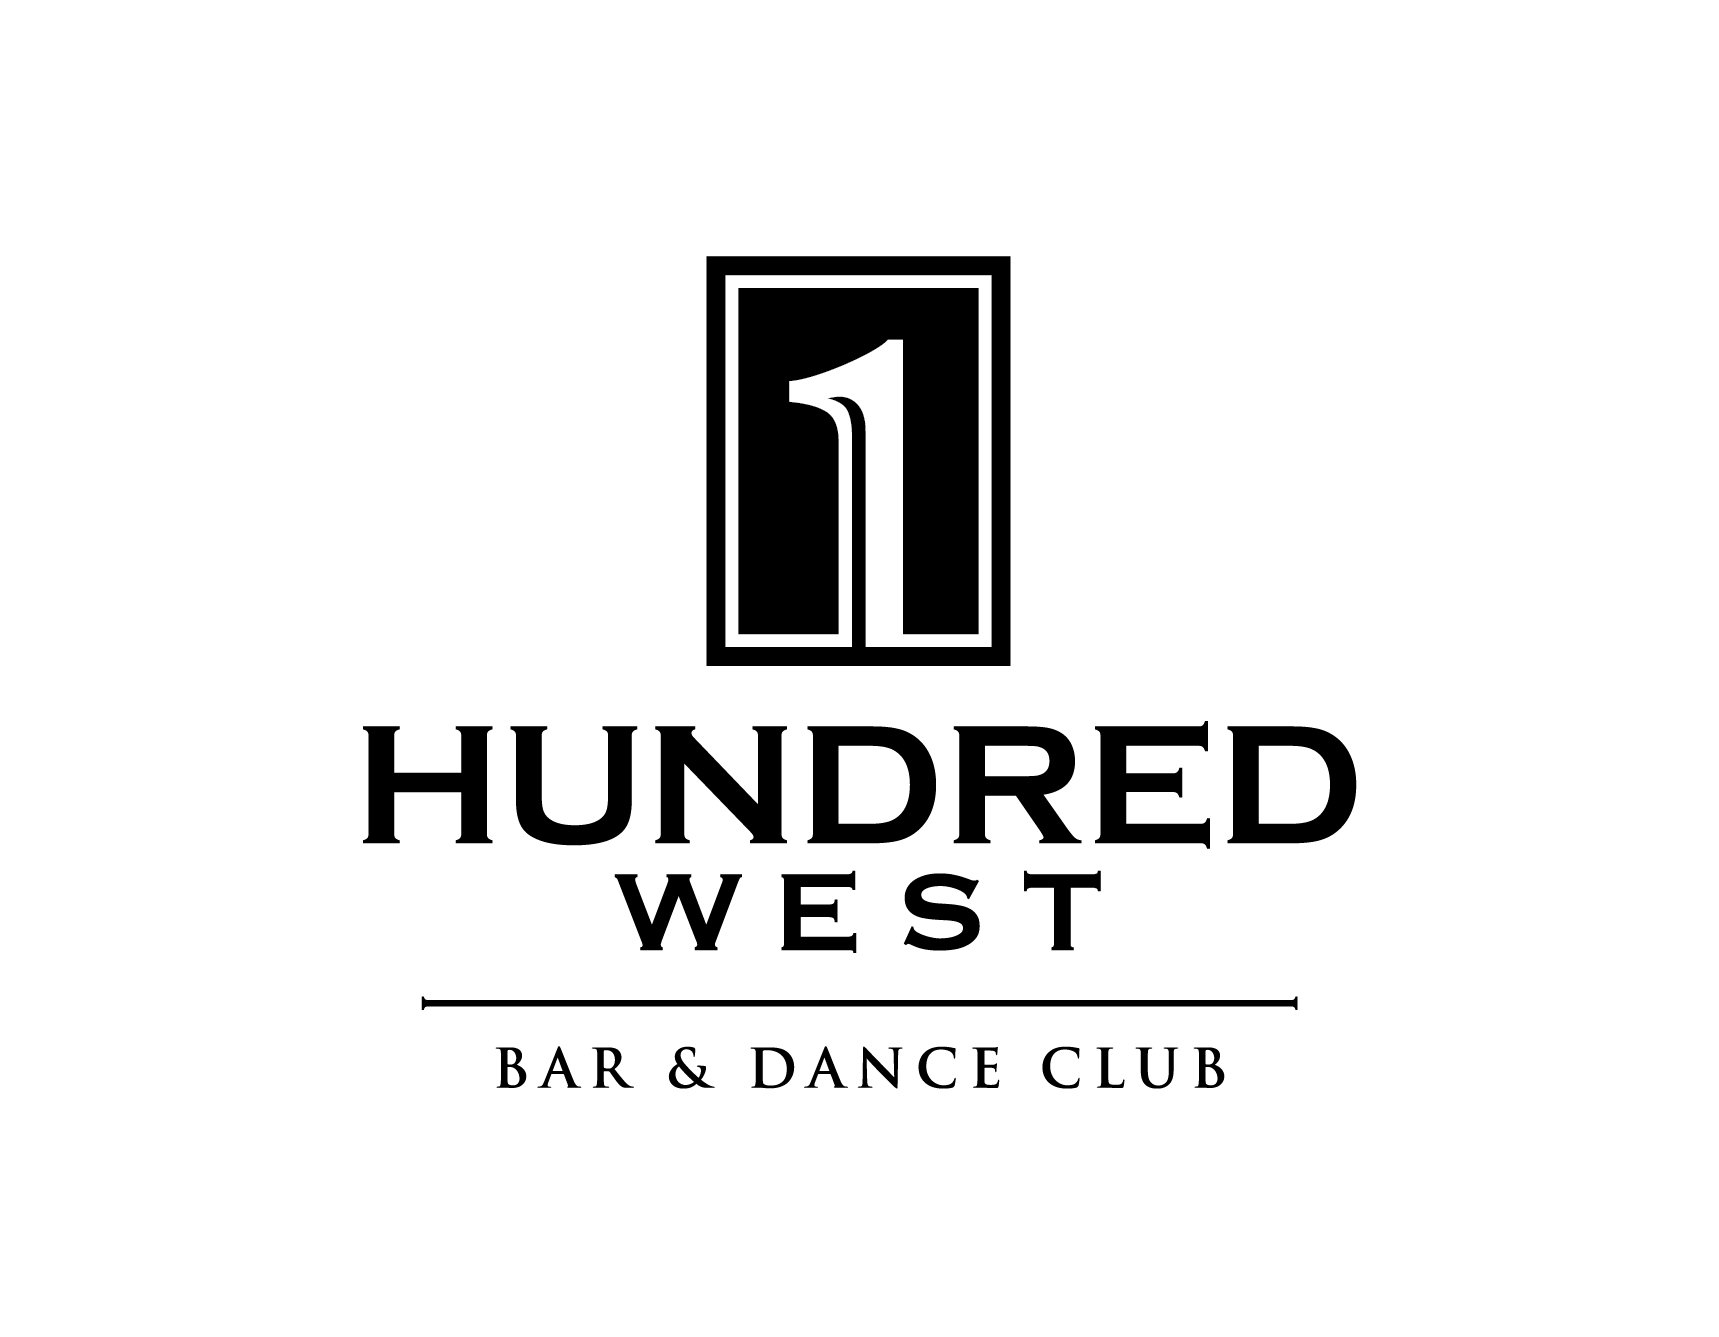 1 Hundred West